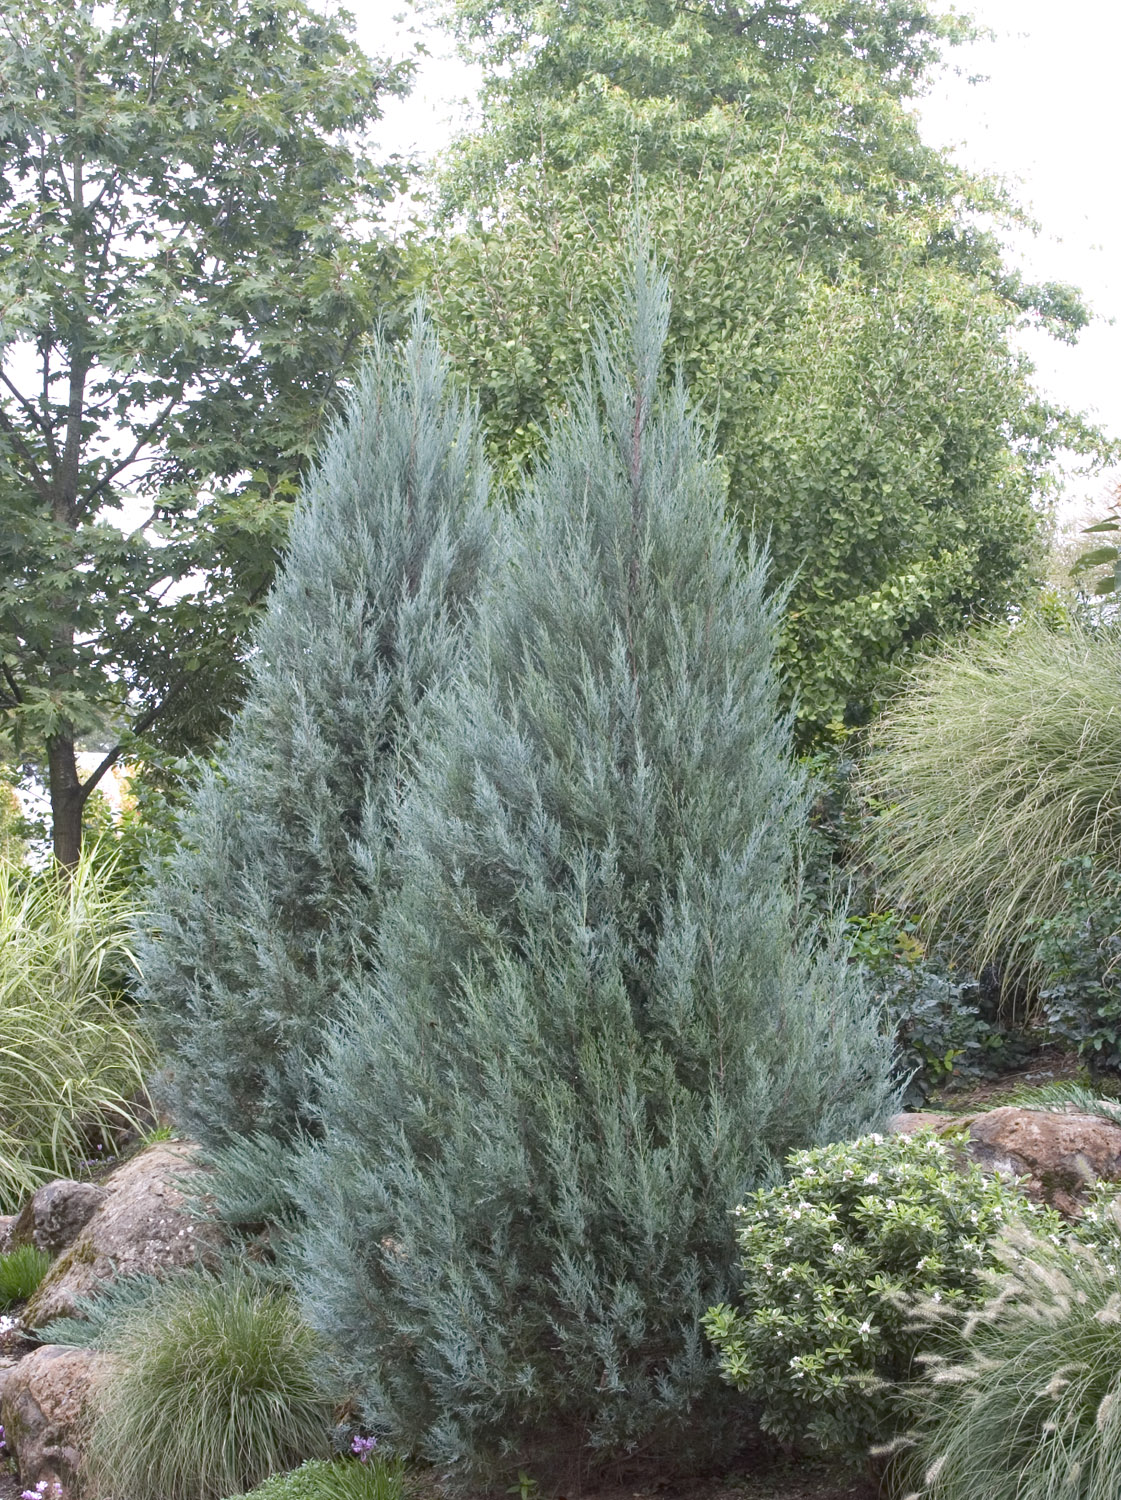 4649 moreover Creative Fences as well Florida Trees Shrubs And Ground Cover Love Zone 10 likewise Redbud Cultivars 4 25 14 furthermore Juncus Effusus Var Pacificus Quartz Creek Images Large 151091. on drought tolerant privacy plants